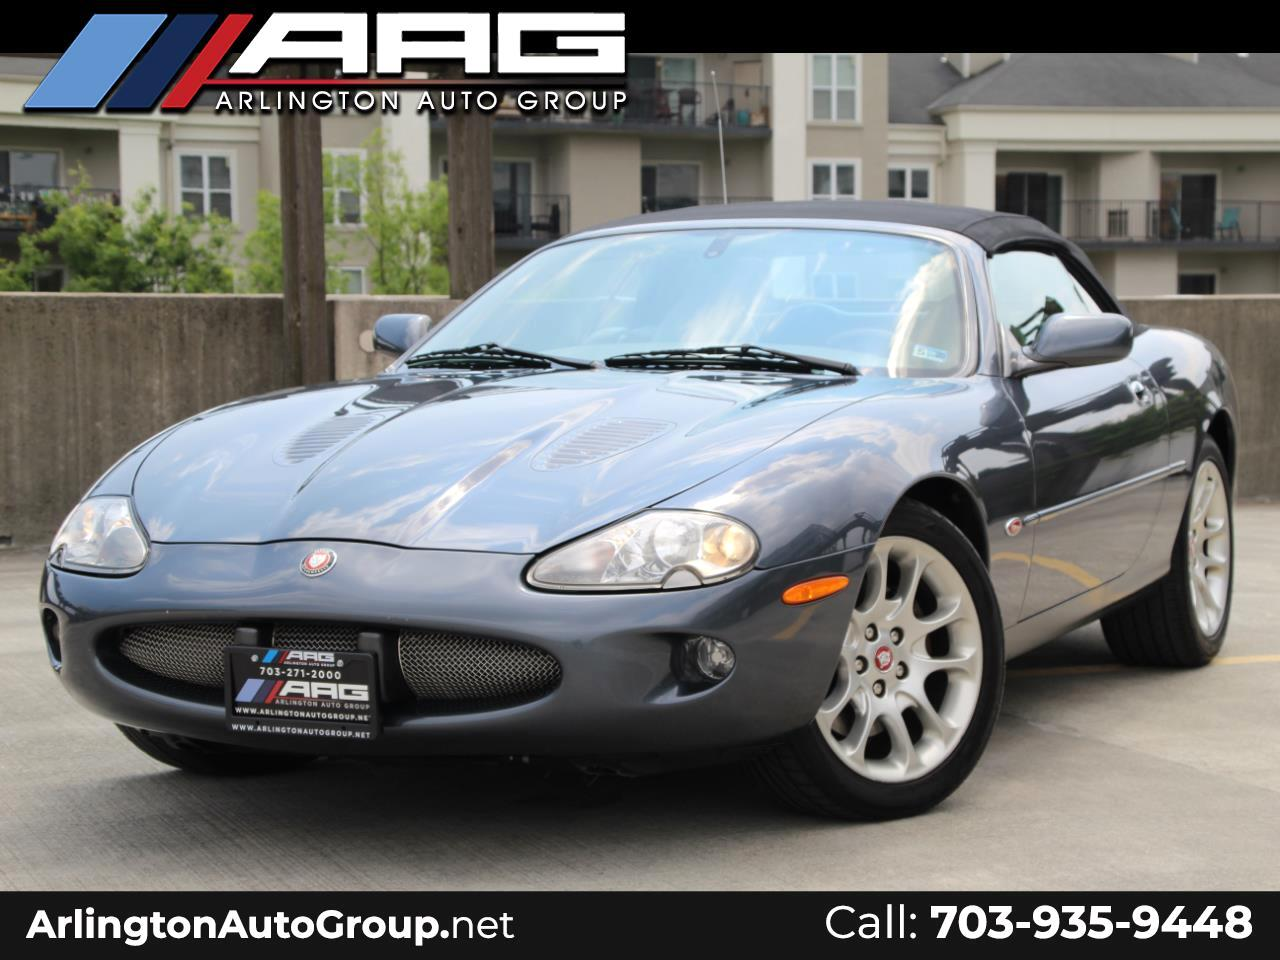 2000 Jaguar XK8 2dr Convertible Supercharged